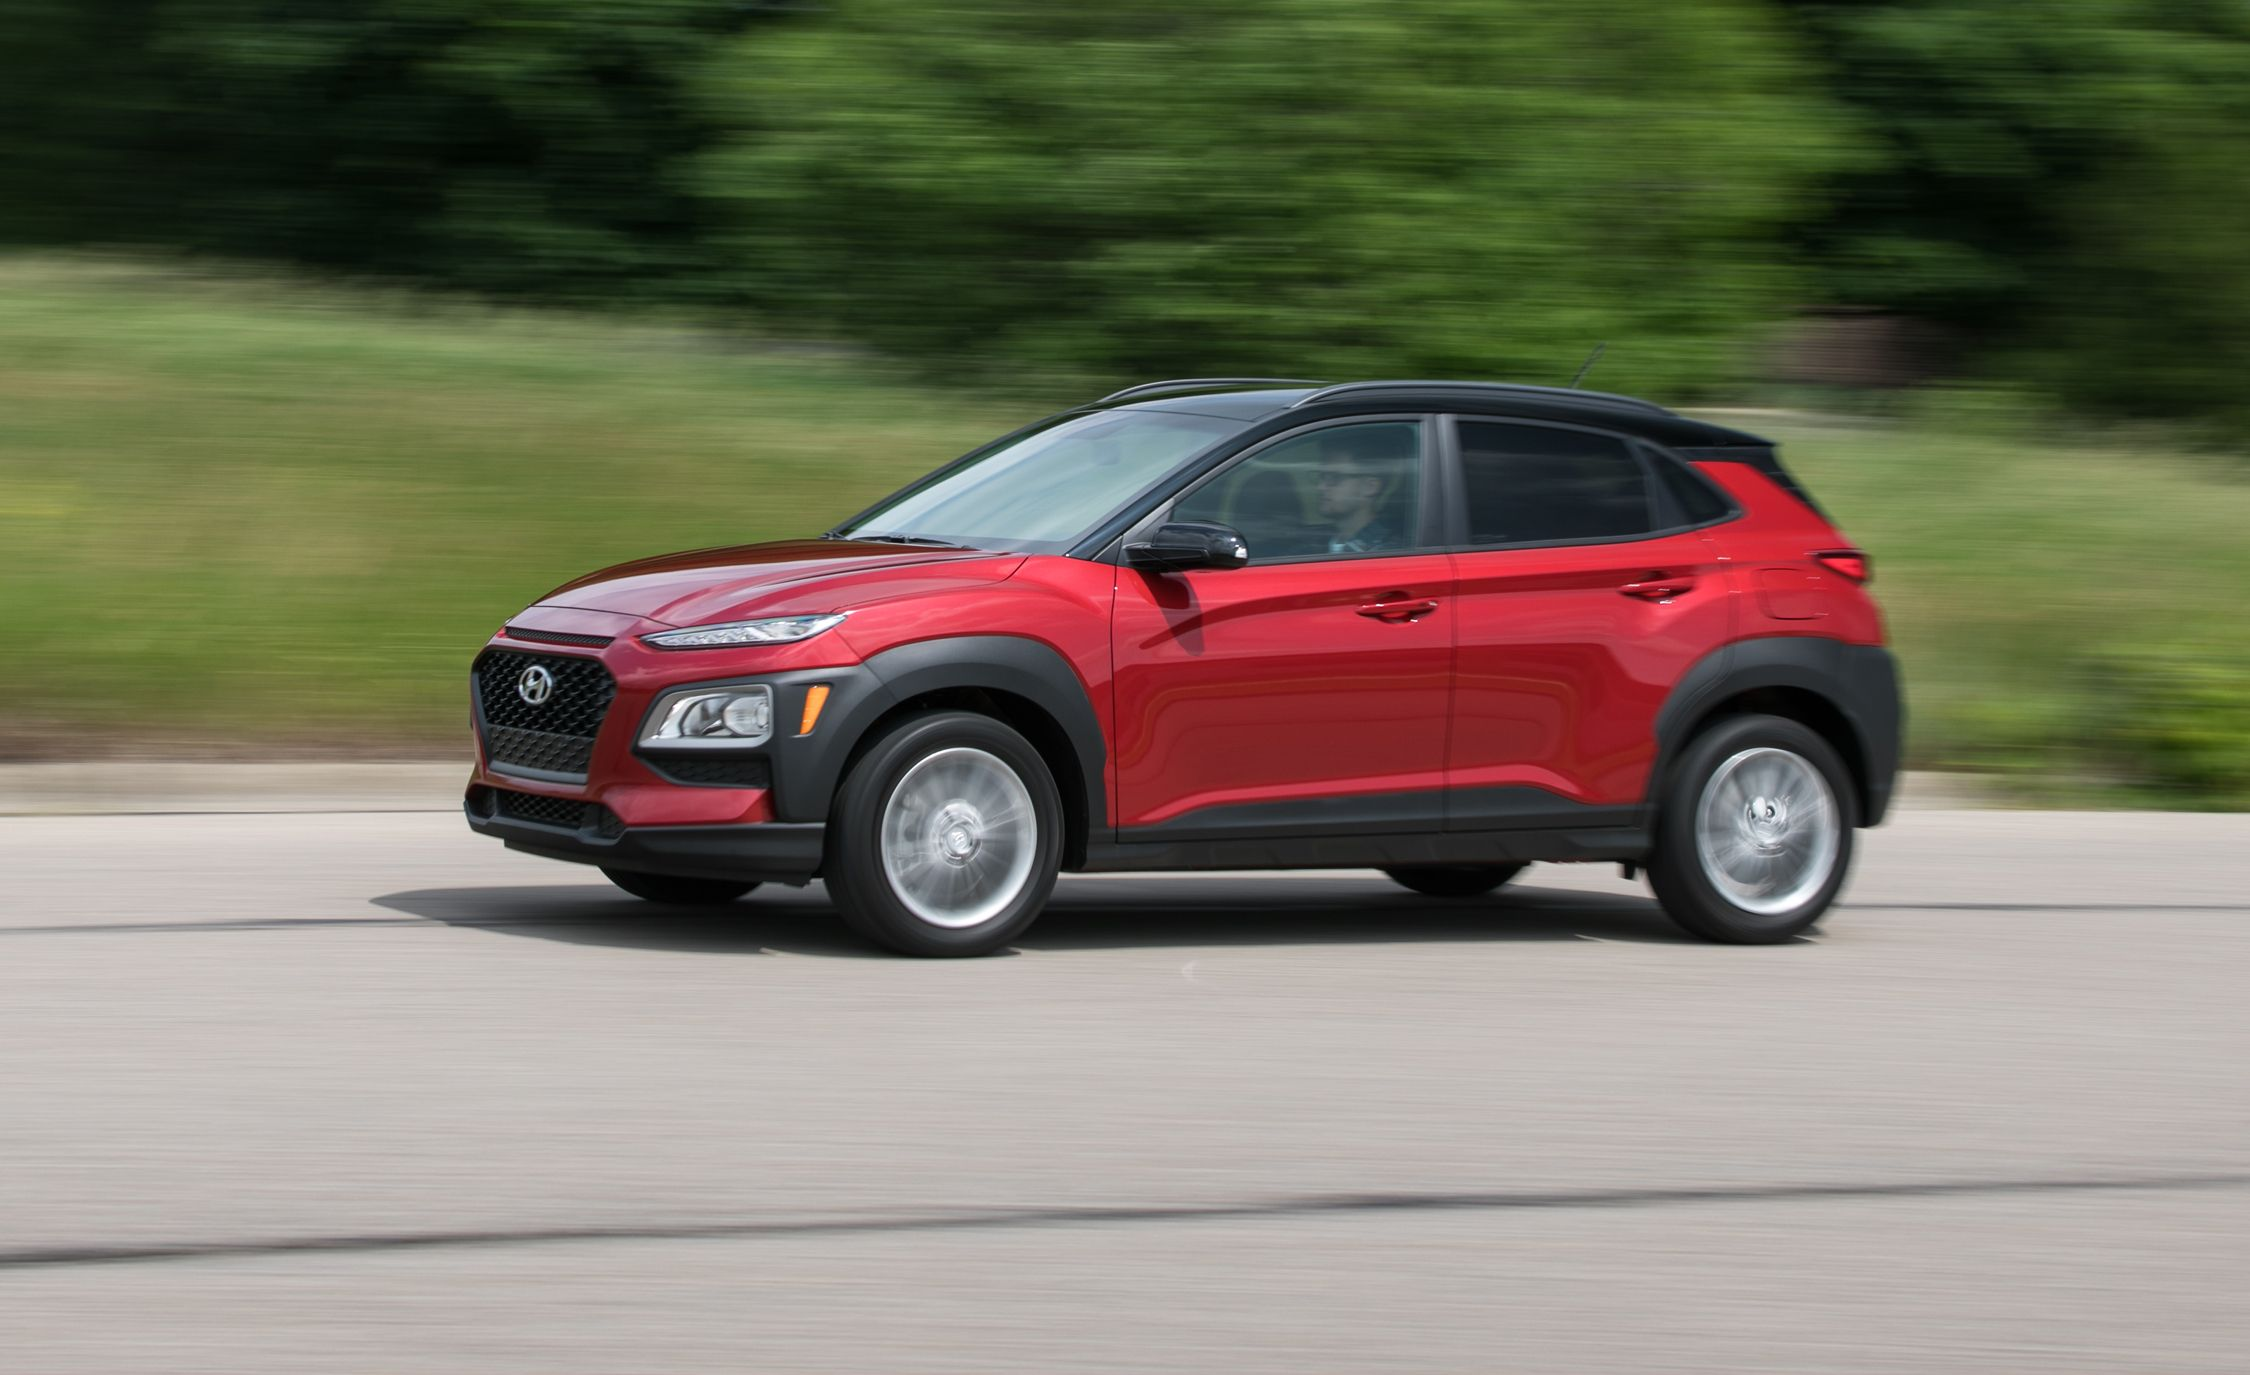 2019 hyundai kona reviews hyundai kona price photos and specs rh caranddriver com 2018 hyundai kona limited specs 2018 hyundai kona limited review